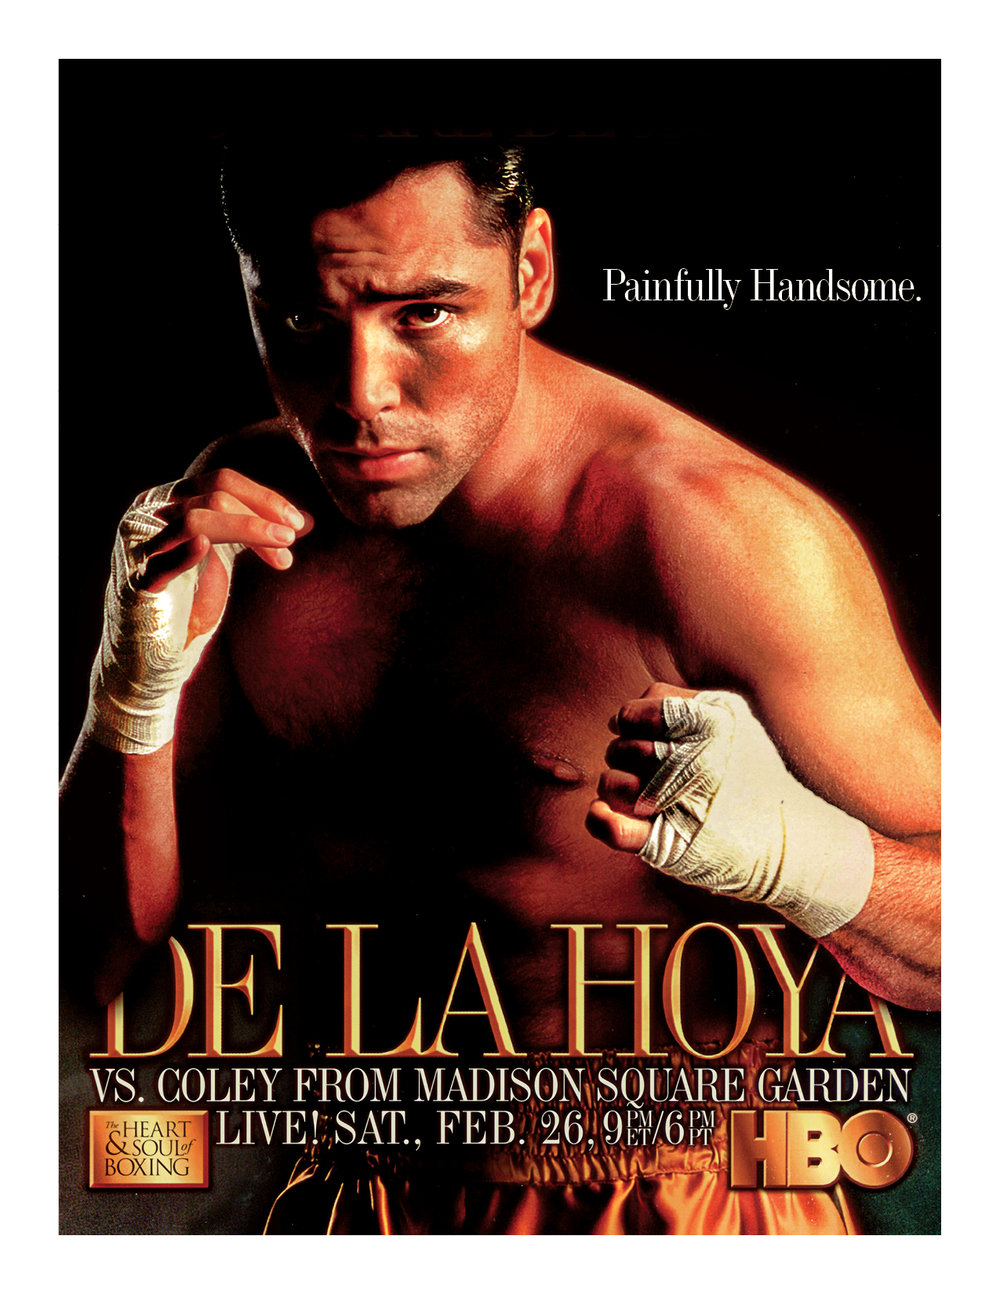 HBO Boxing P360 Website14.jpg